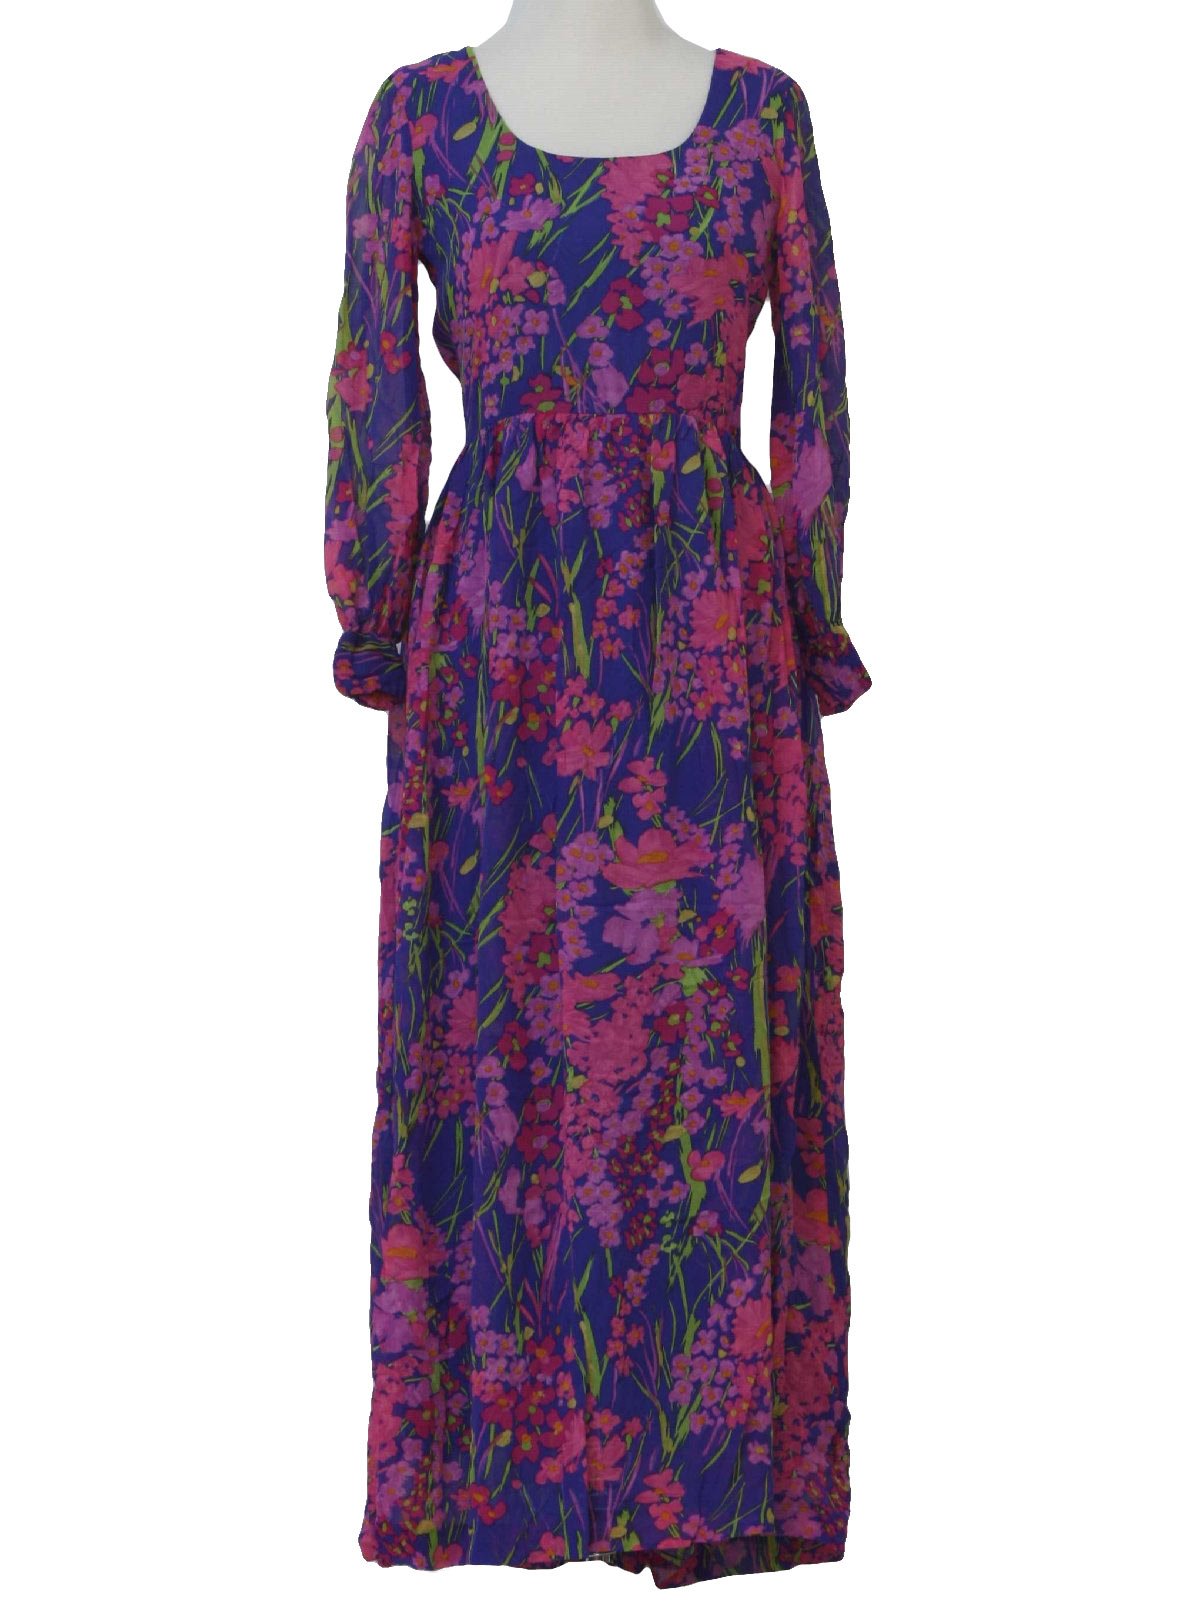 Vintage 60s Hippie Dress: Late 60s or early 70s -Saks Fifth Avenue ...